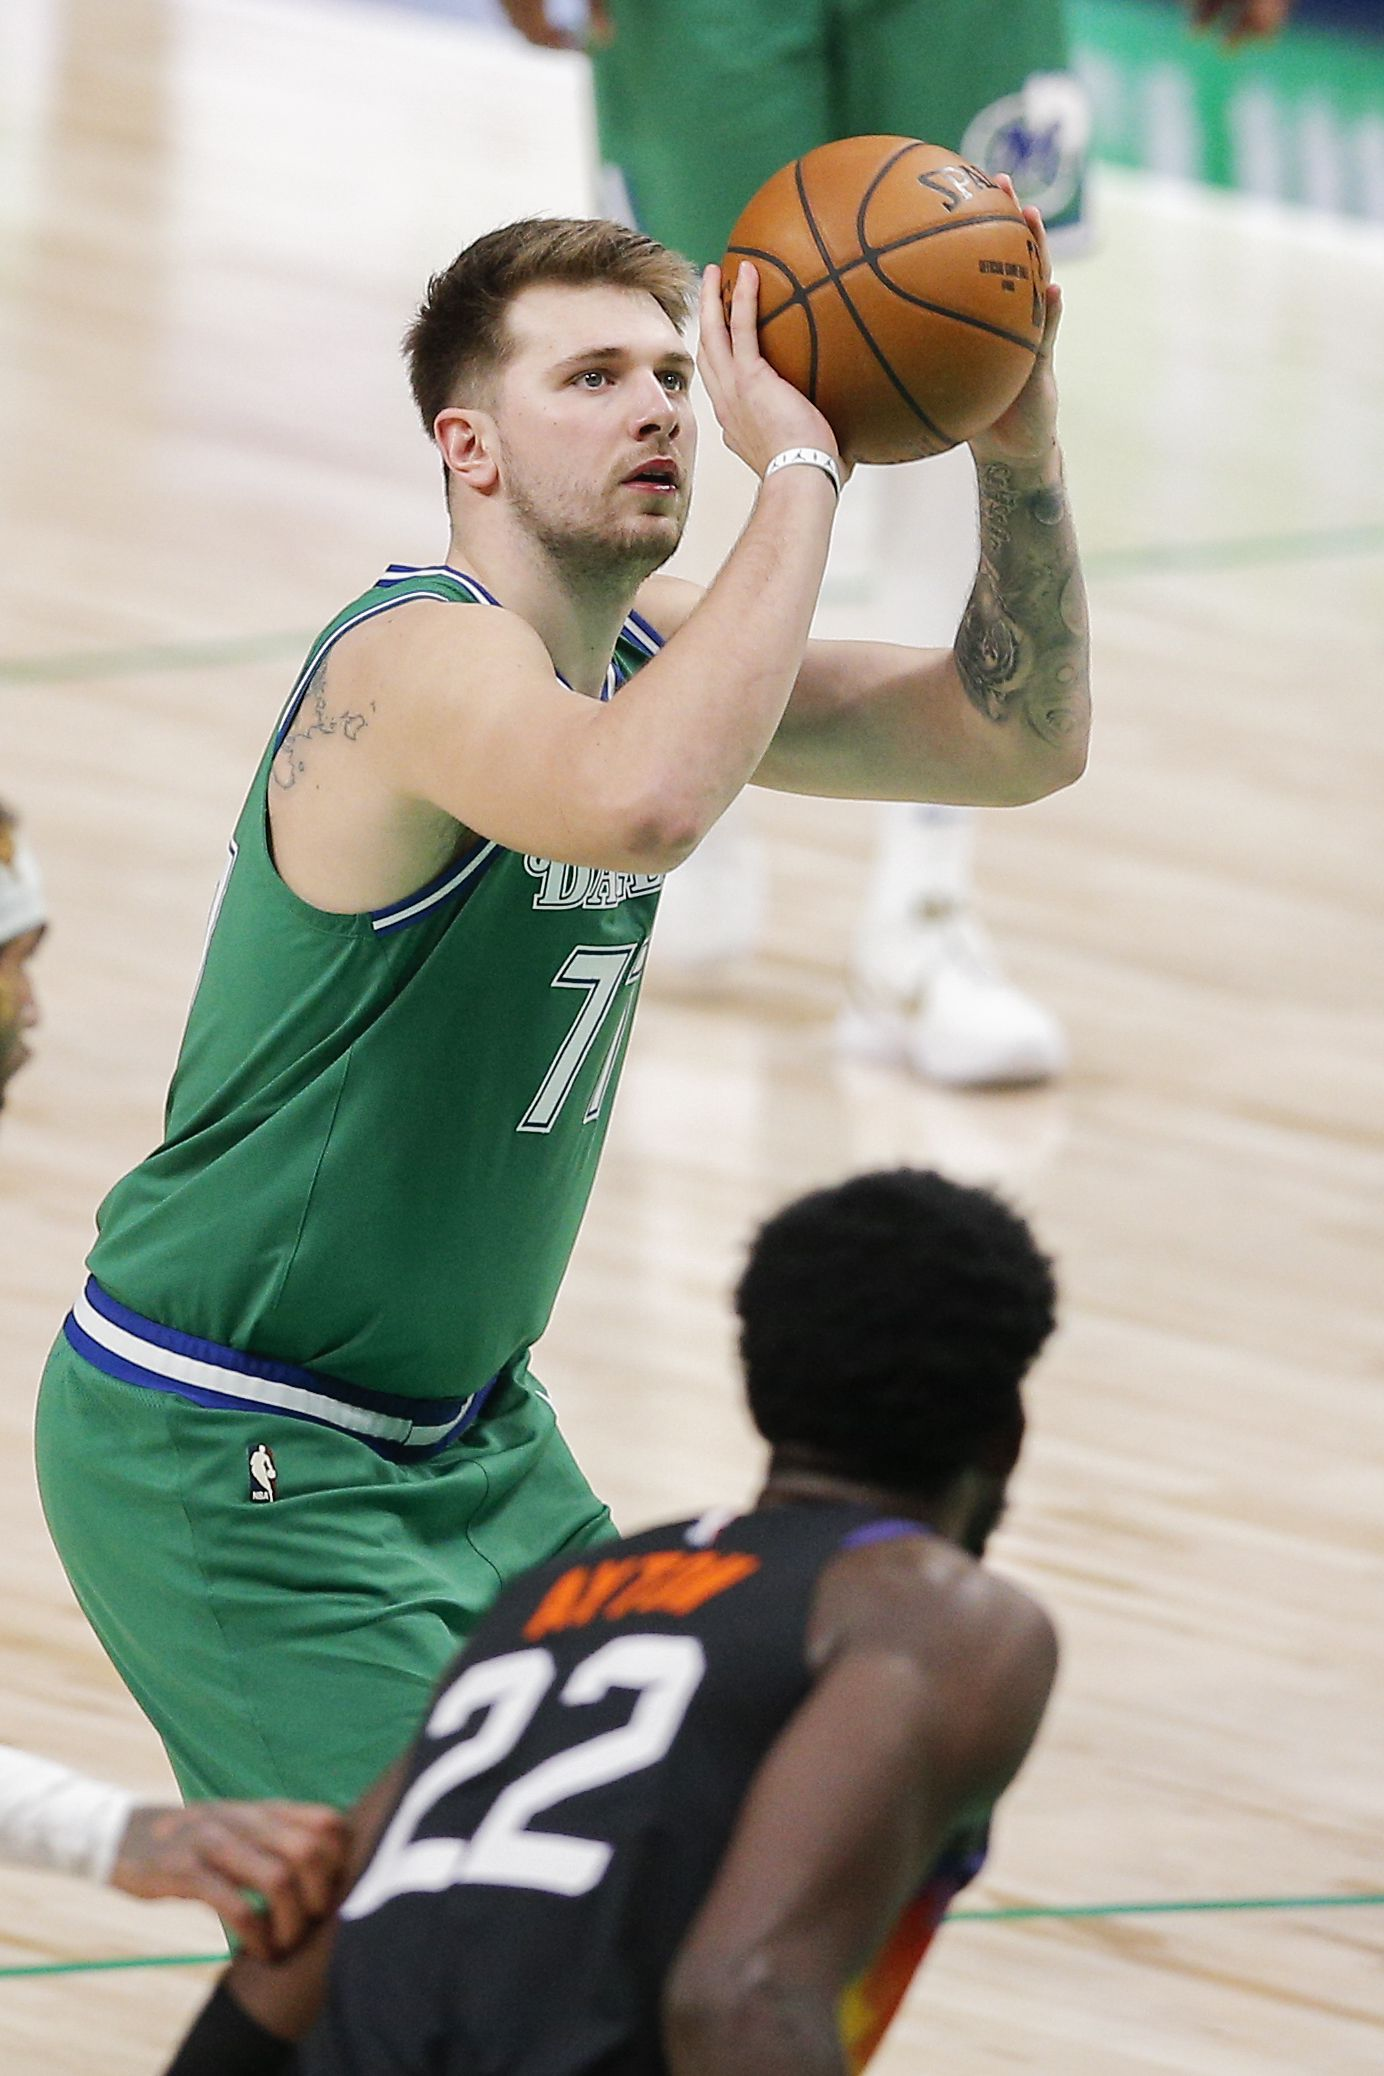 Dallas Mavericks guard Luka Doncic (77) attempts a free throw during the second half of an NBA basketball game in Dallas, Saturday, January 30, 2021. (Brandon Wade/Special Contributor)